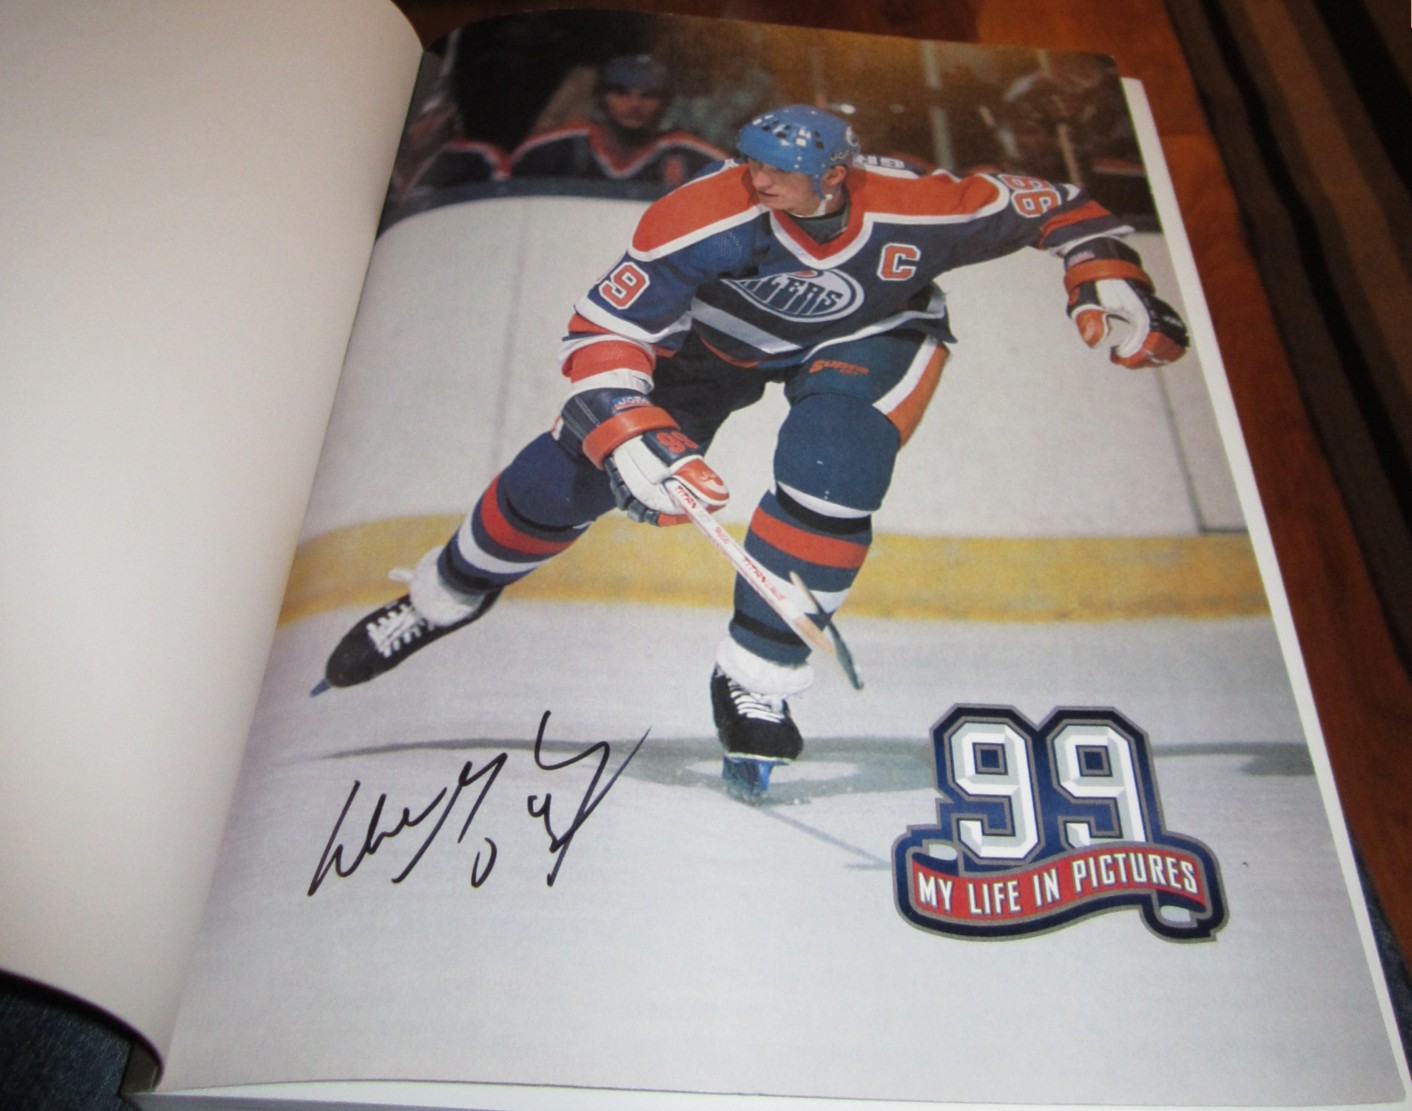 Wayne Gretzky autographed 99 My Life in Pictures coffee table softcover book 0dbf18993